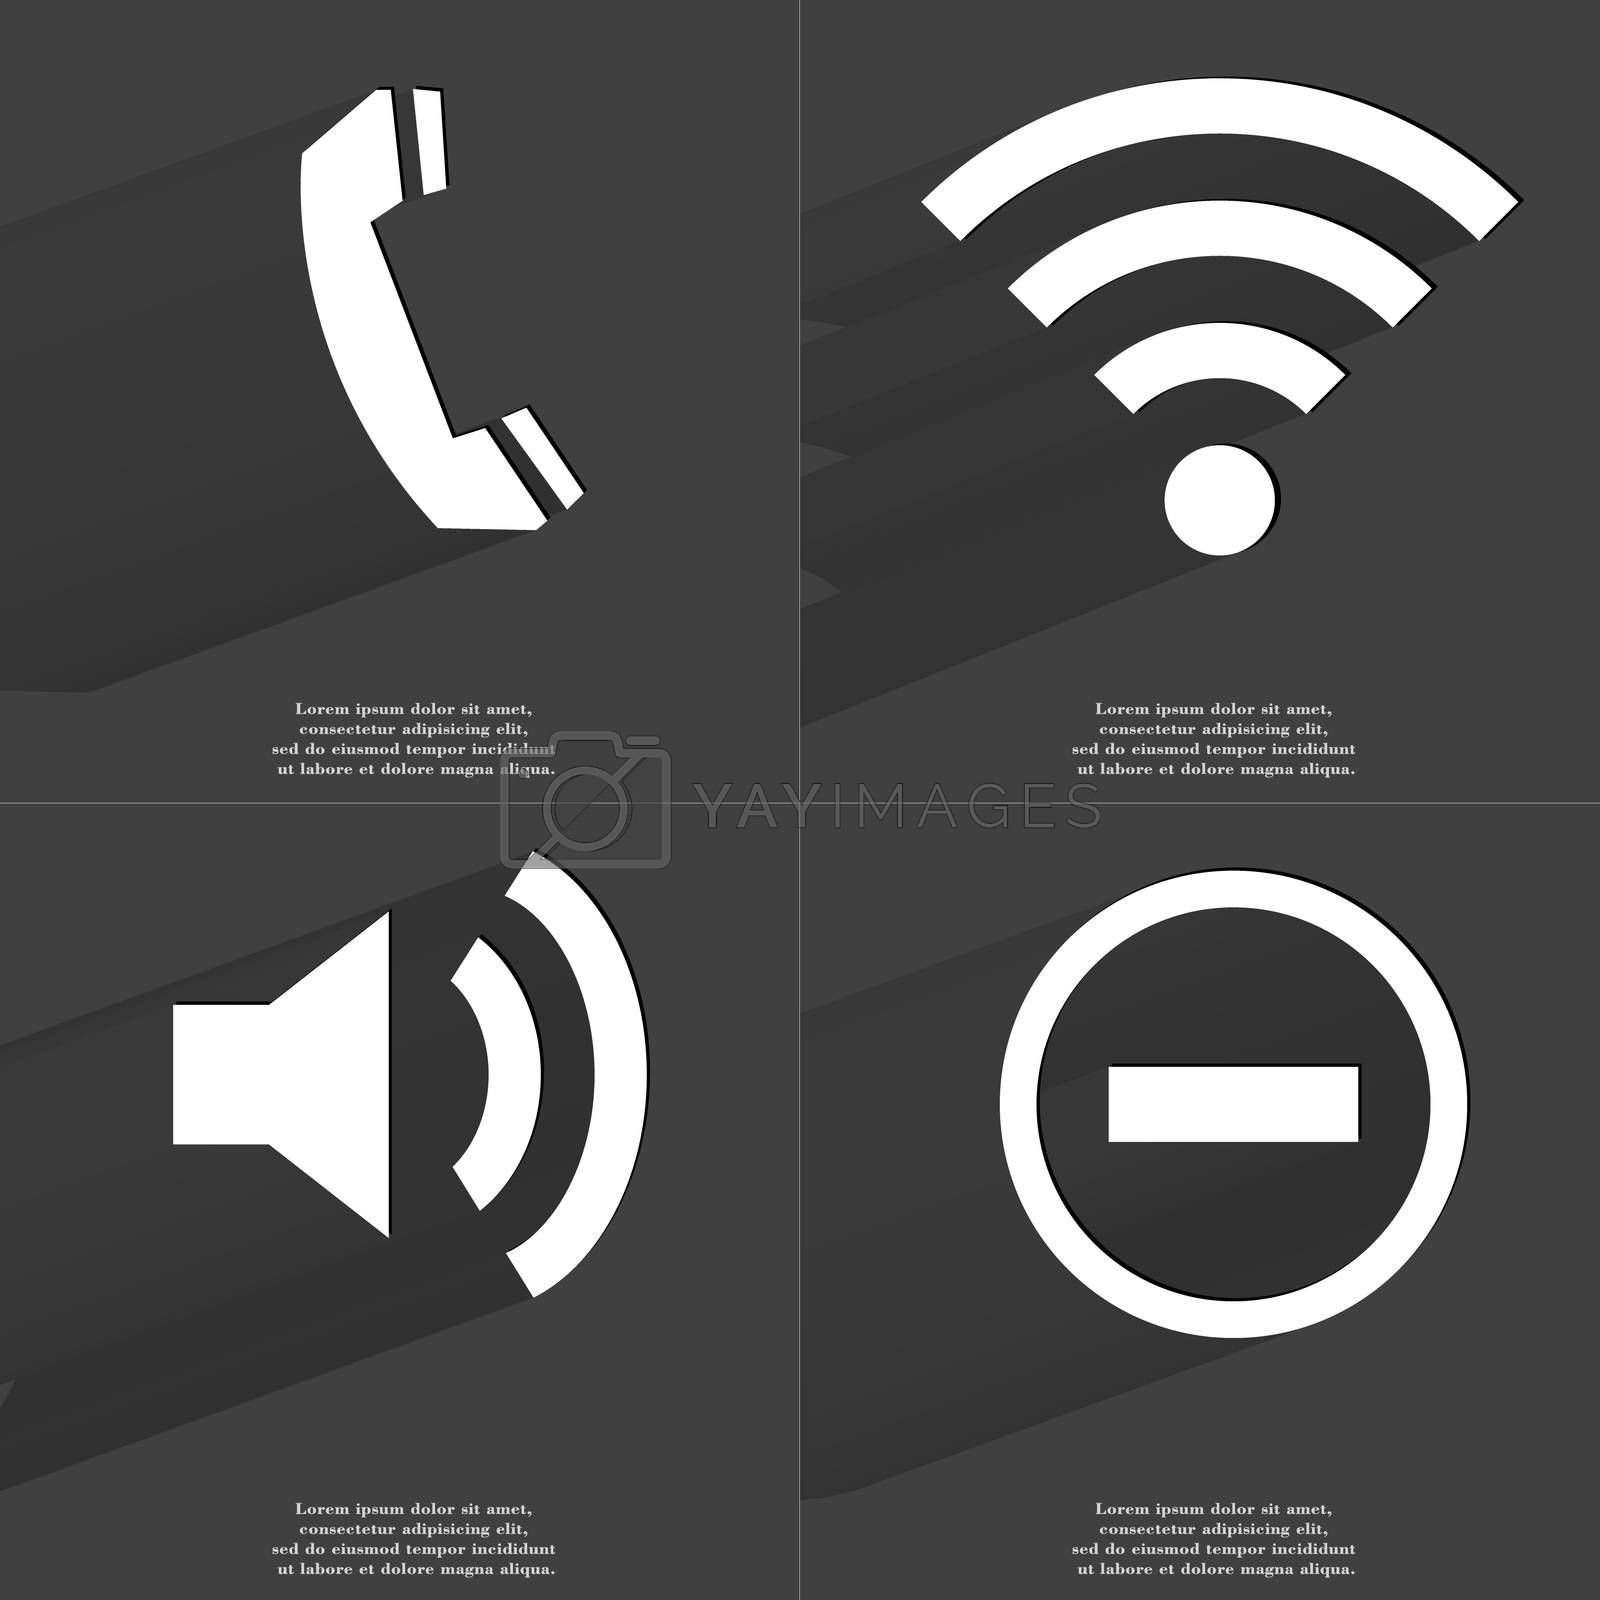 Royalty free image of Receiver, WLAN icon, Sound, Minus sign. Symbols with long shadow. Flat design by serhii_lohvyniuk